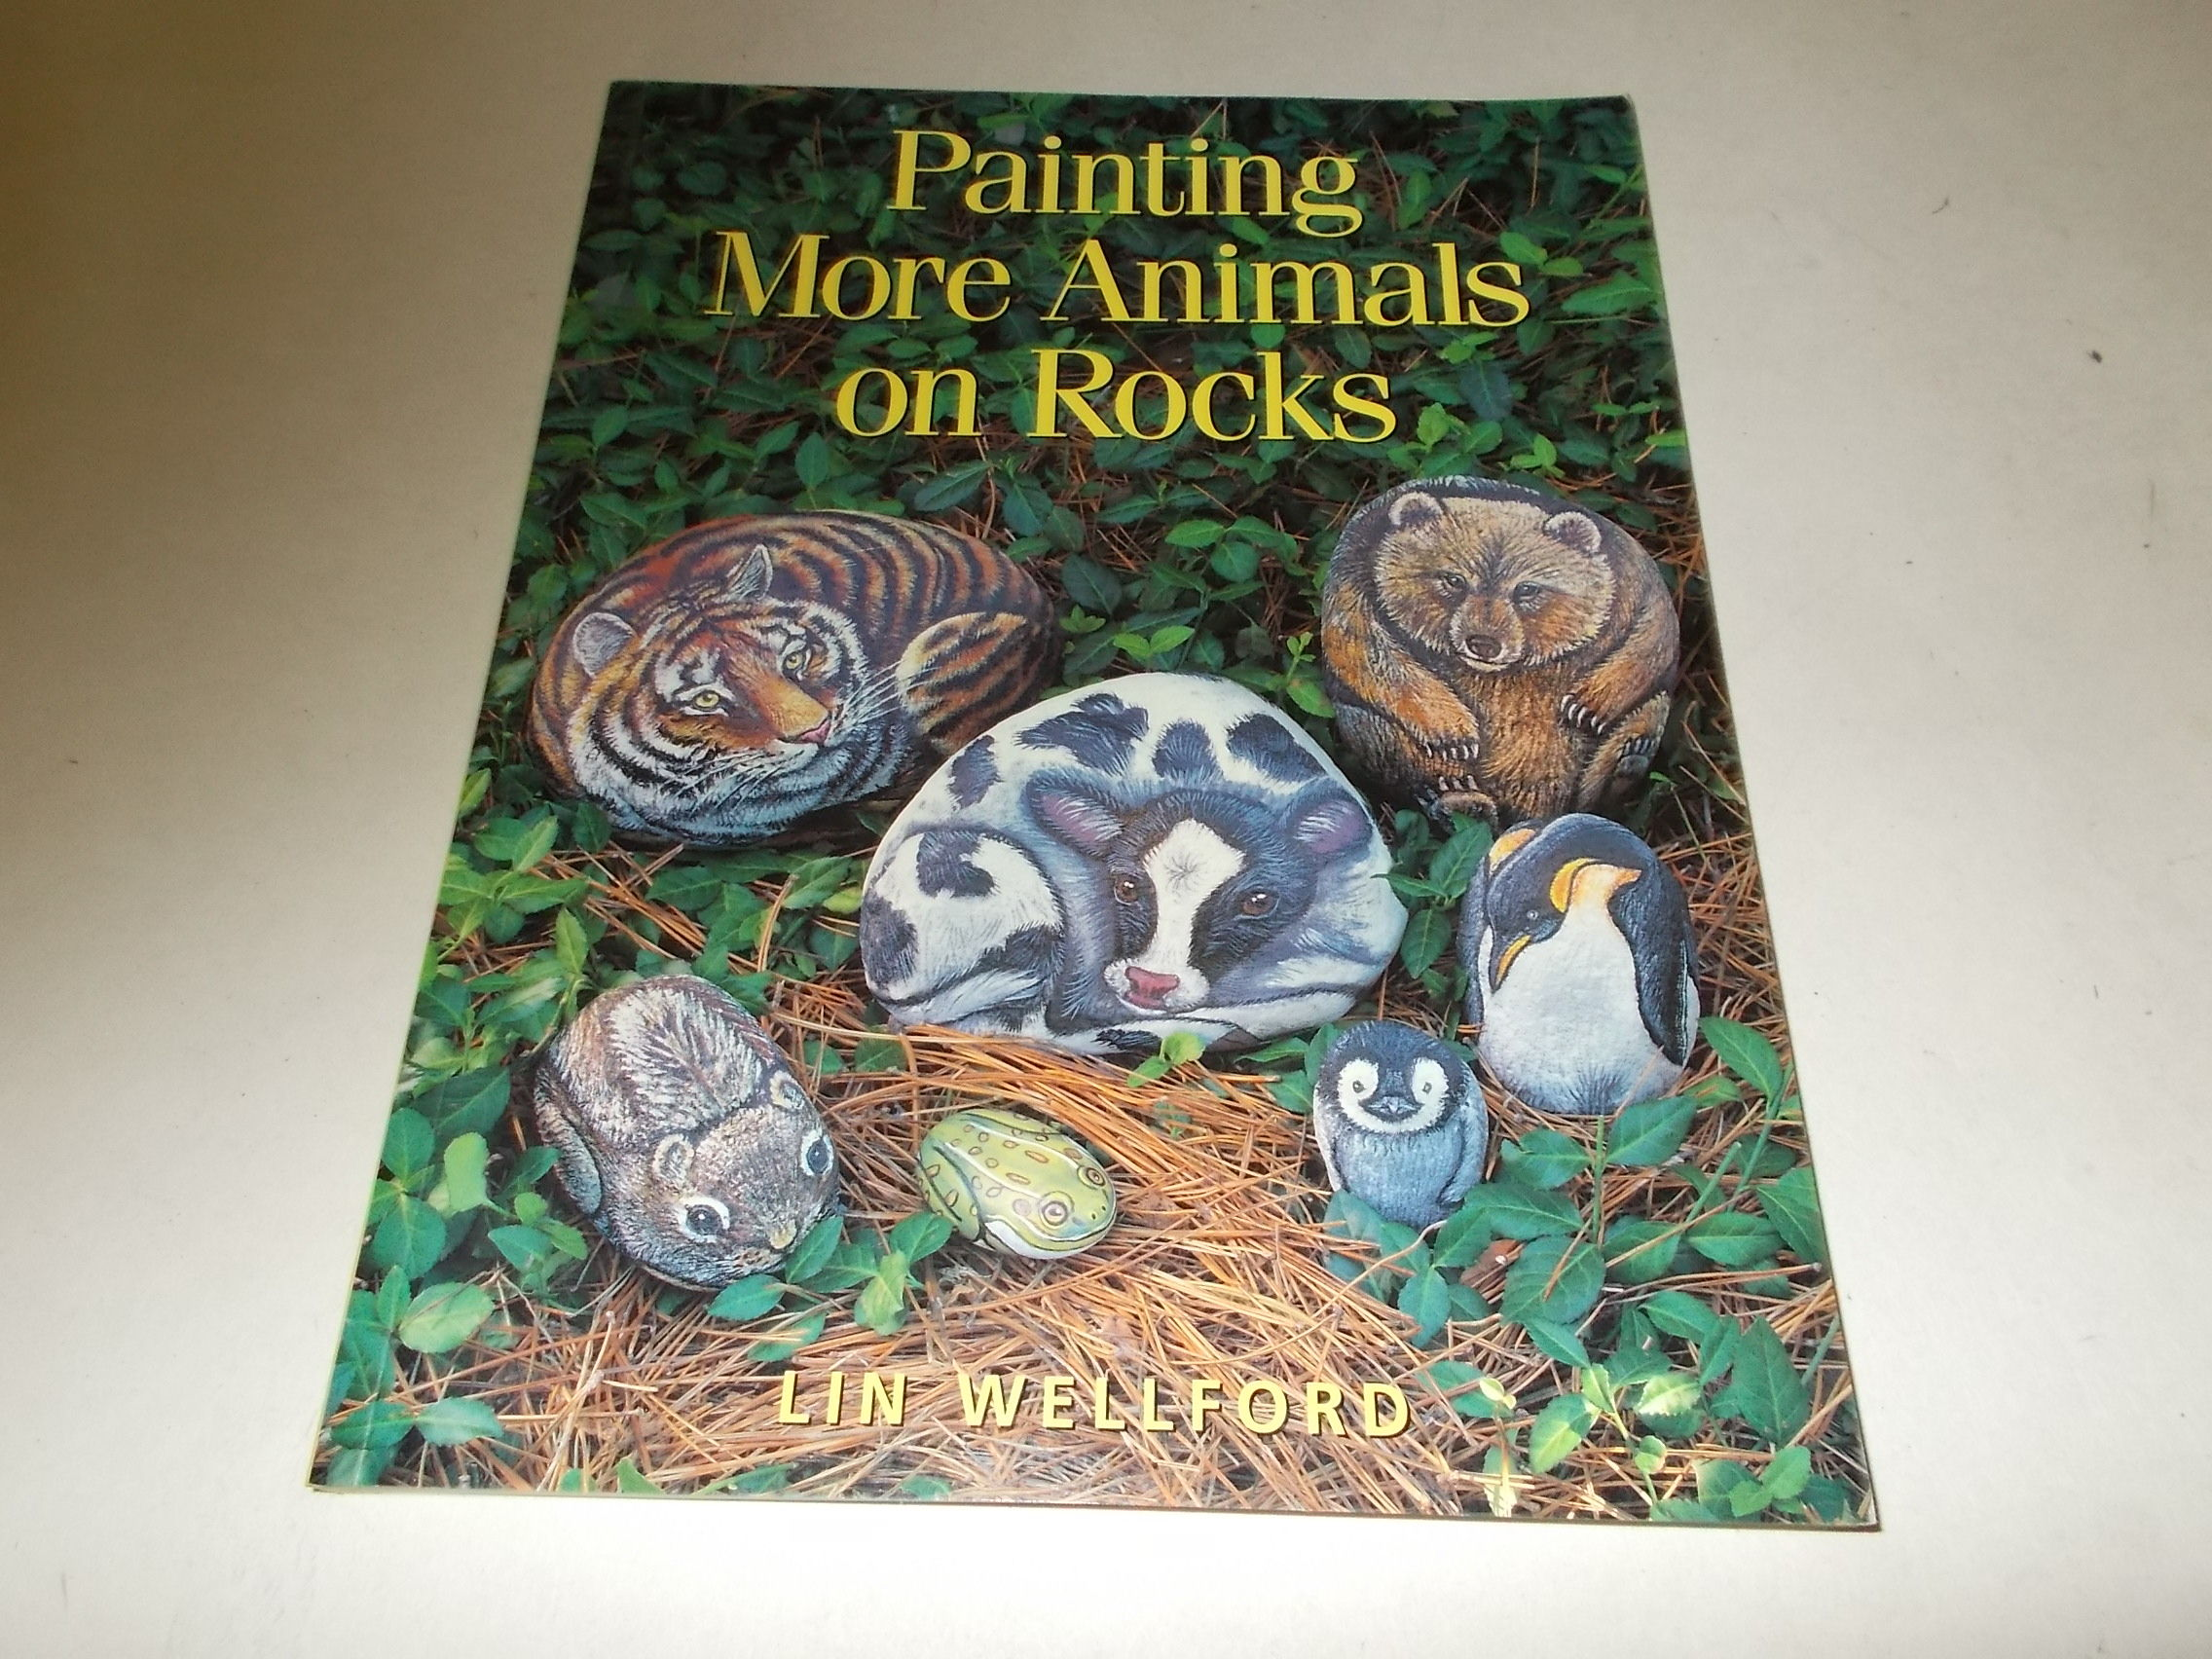 Painting More Animals on Rocks